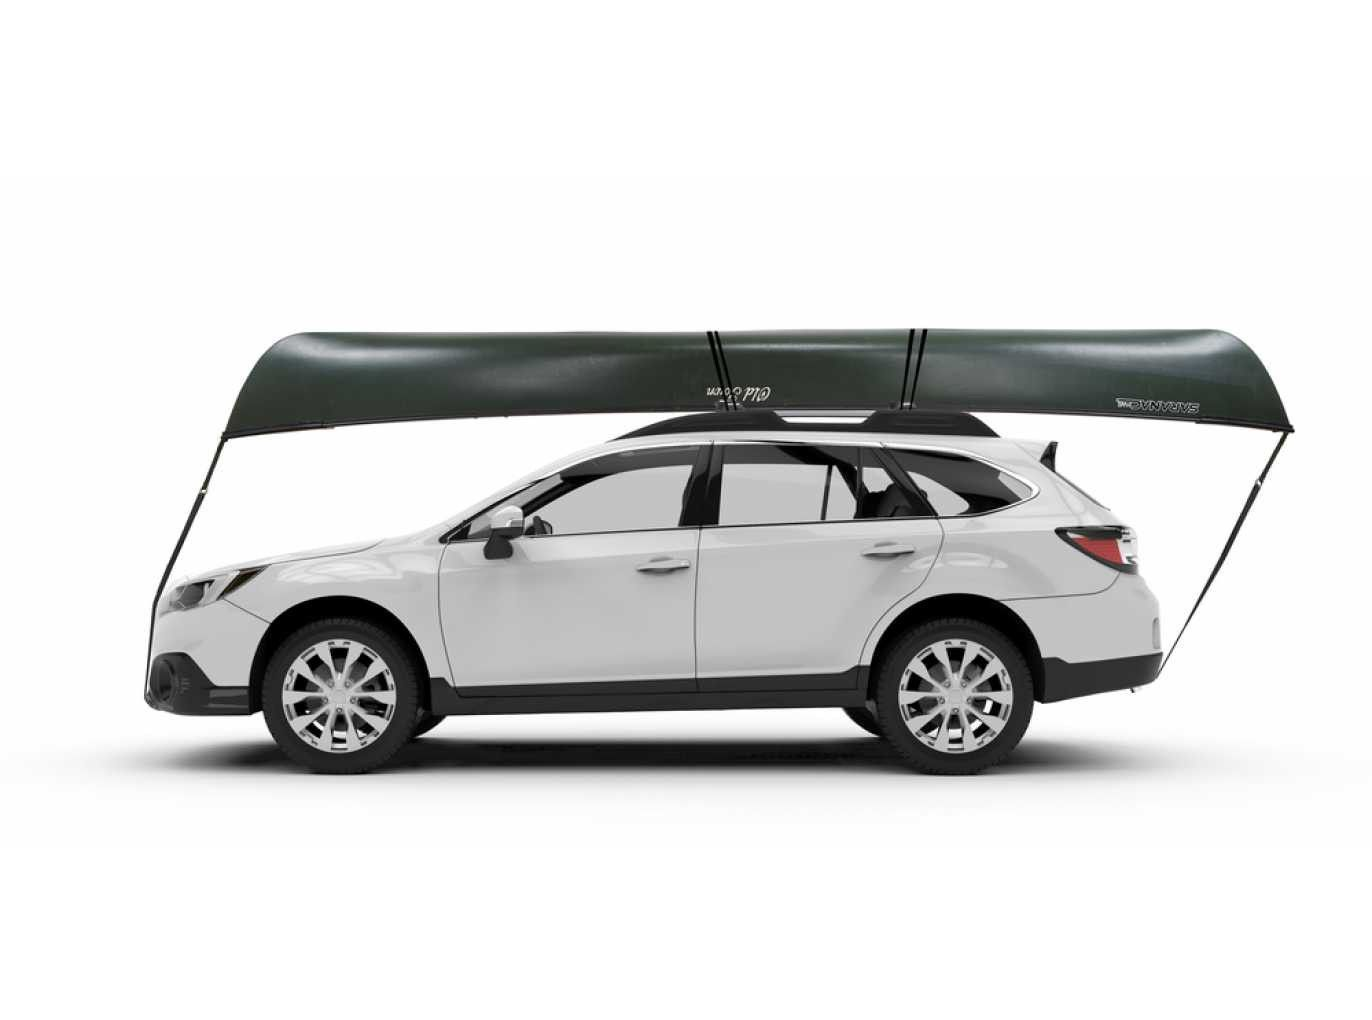 Yakima KeelOver Rooftop Canoe Carrier with Tie-Downs - Universal Mount